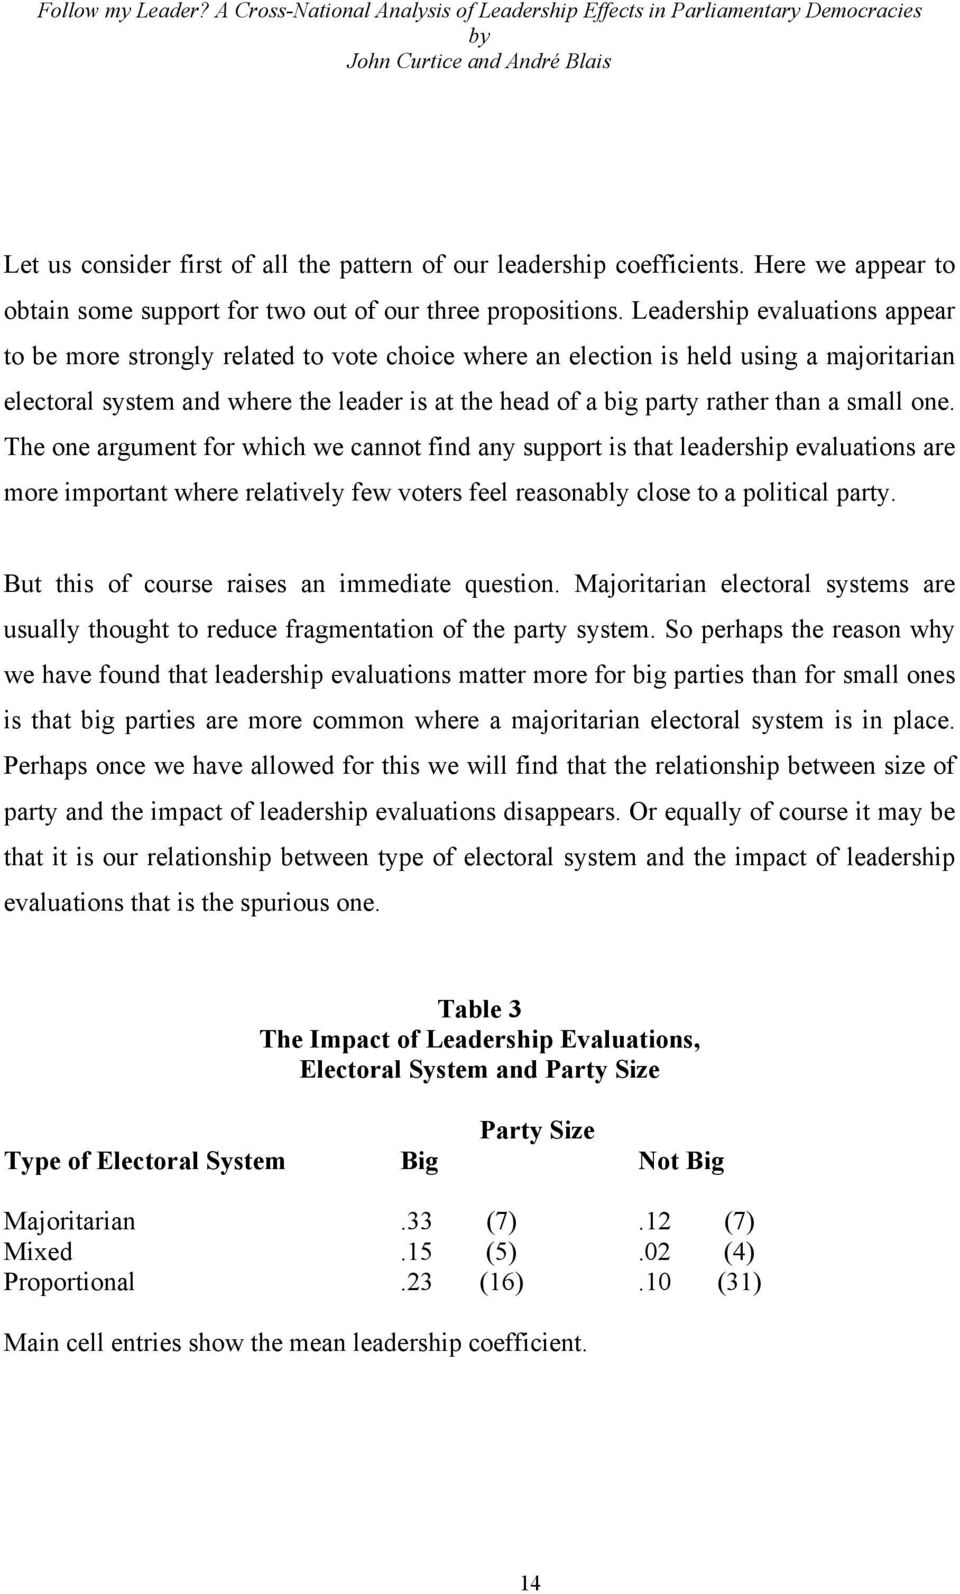 a small one. The one argument for which we cannot find any support is that leadership evaluations are more important where relatively few voters feel reasonably close to a political party.